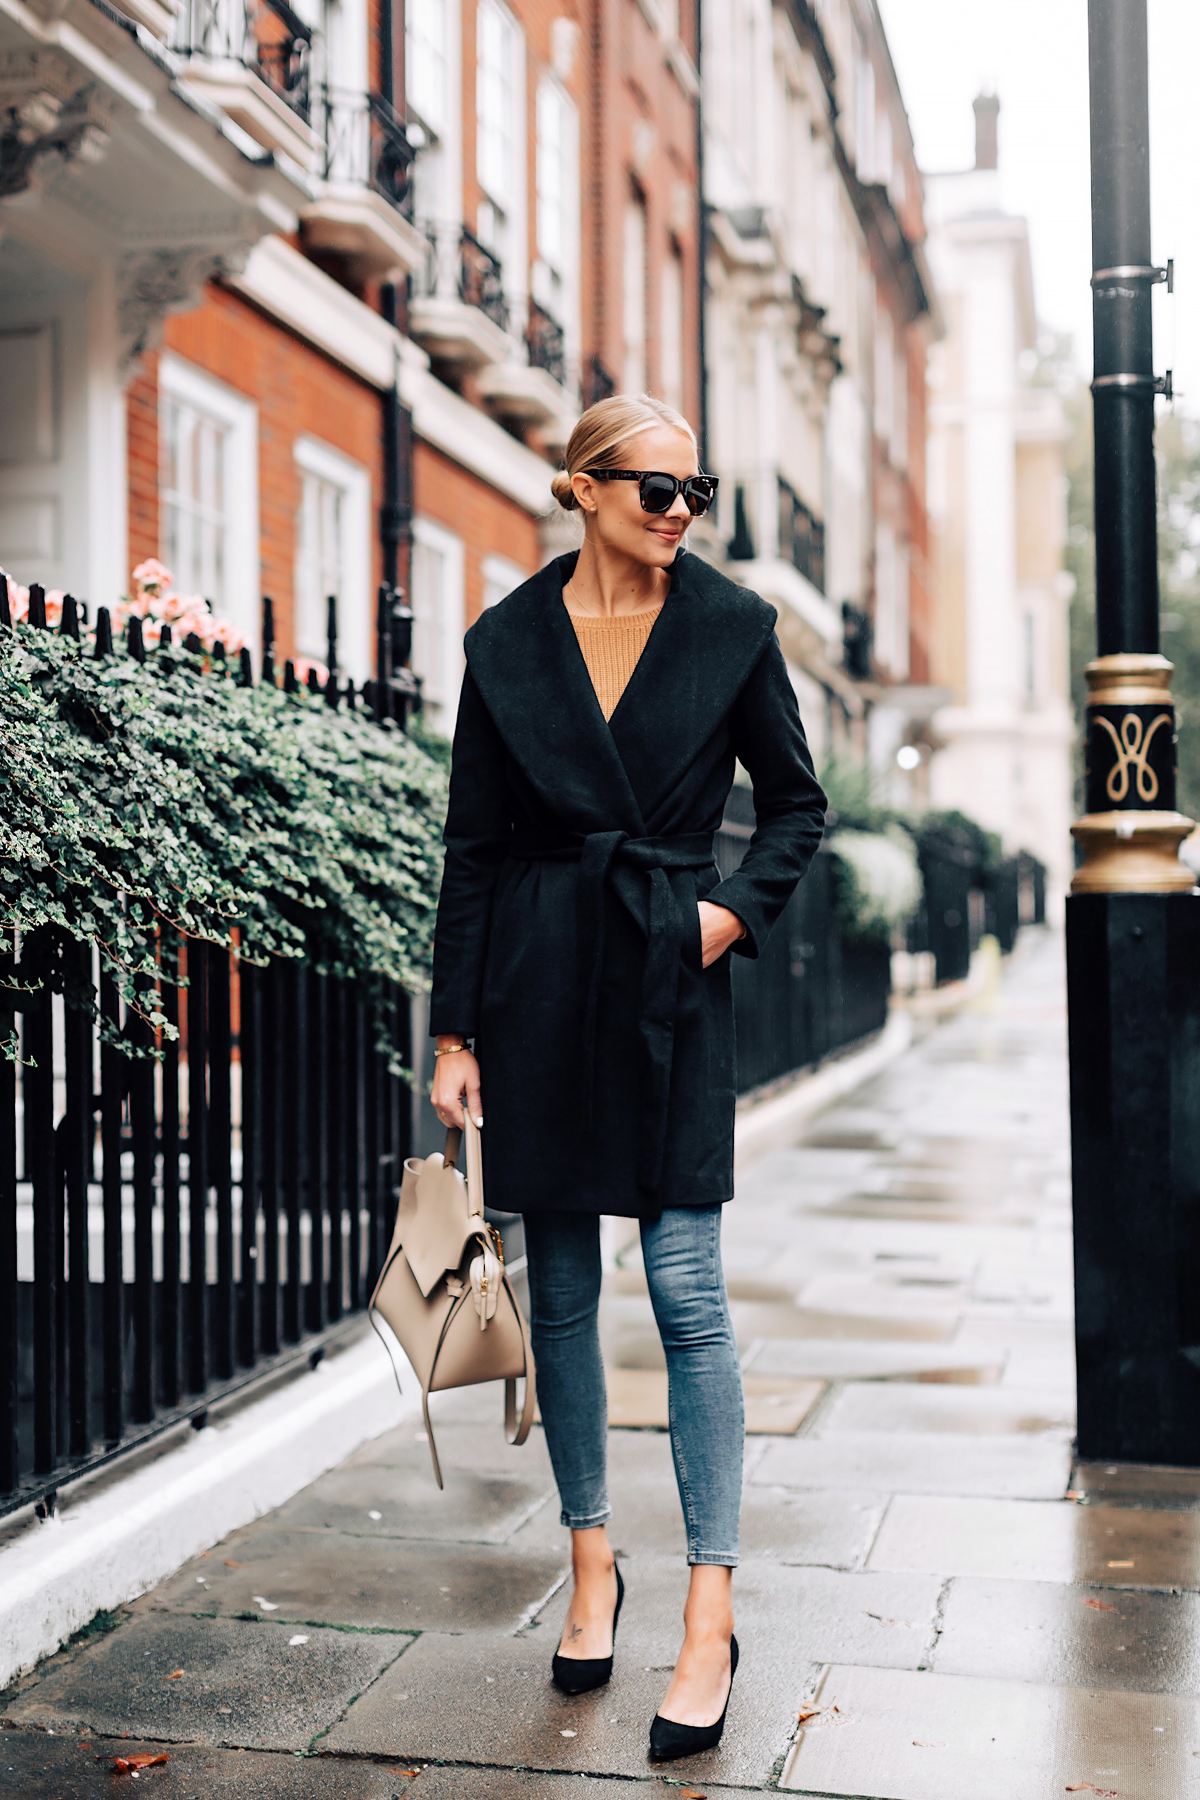 Blonde Woman Wearing Ann Taylor Black Wrap Coat Camel Sweater Denim Skinny Jeans Outfit Black Pumps Fashion Jackson San Diego Fashion Blogger London Street Style